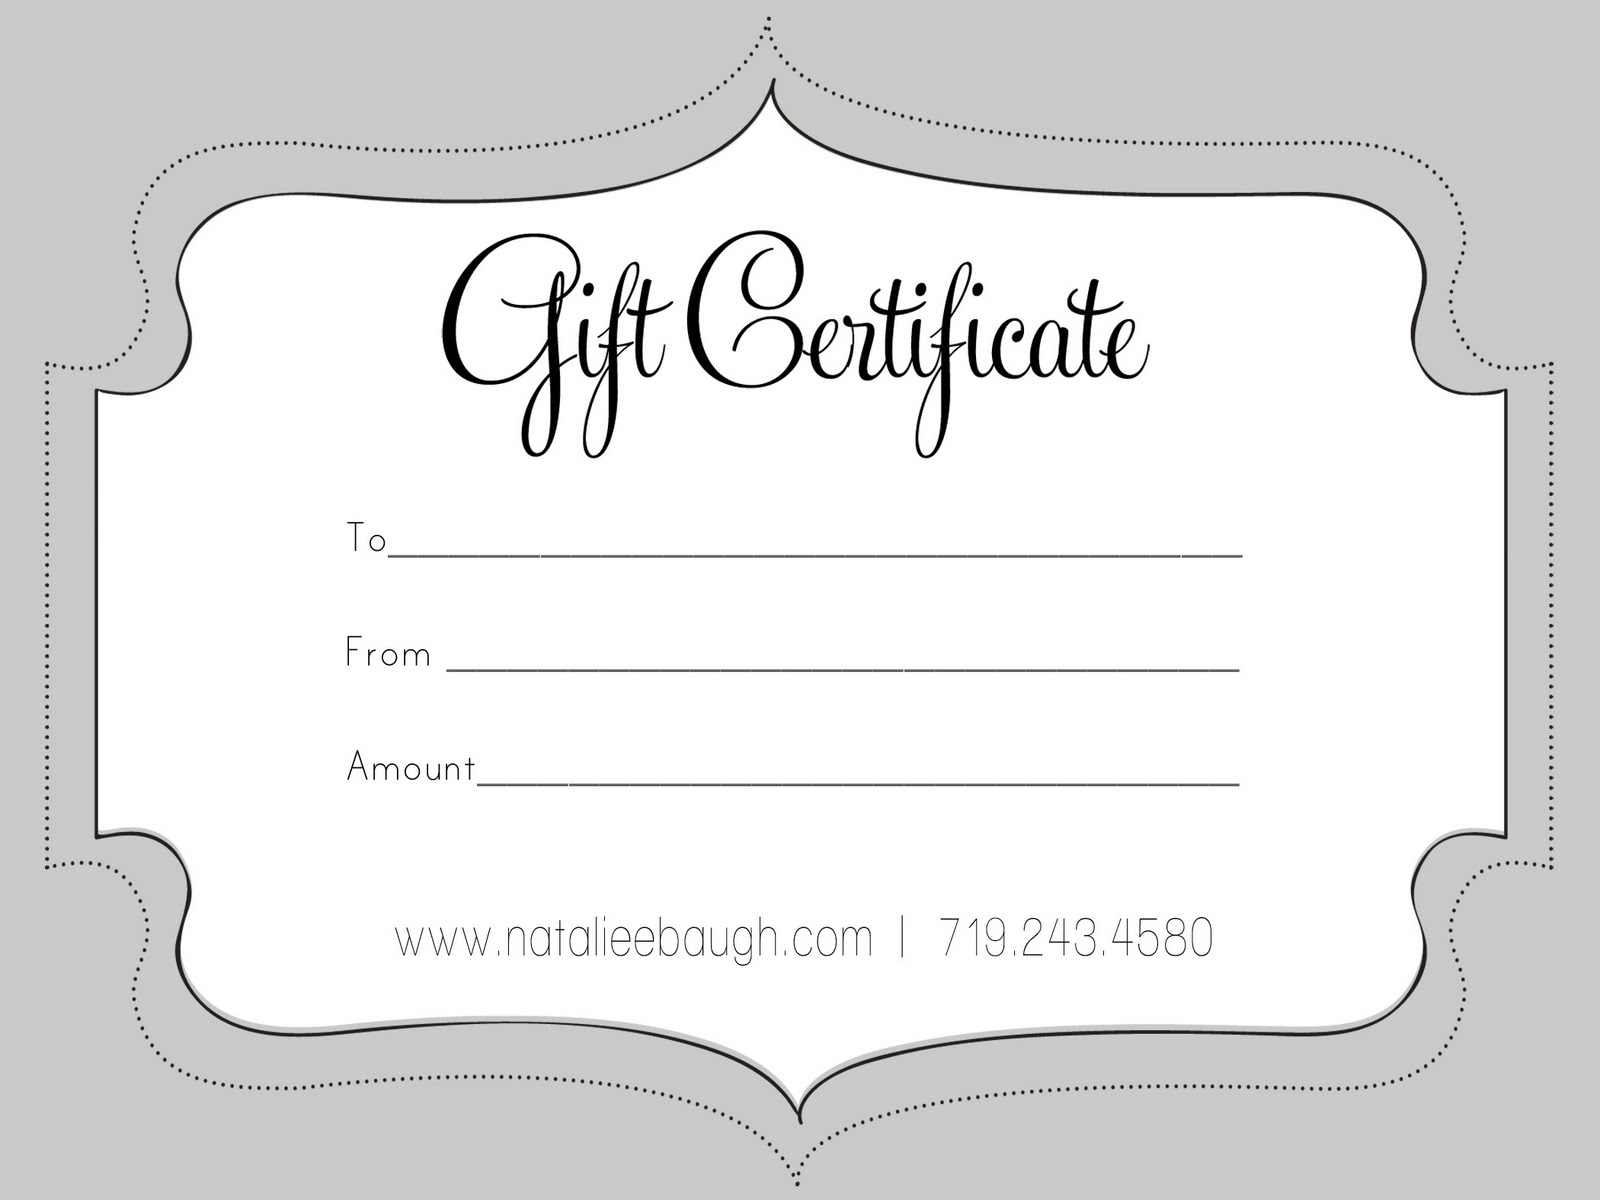 how to make a gift certificate online juve cenitdelacabrera co